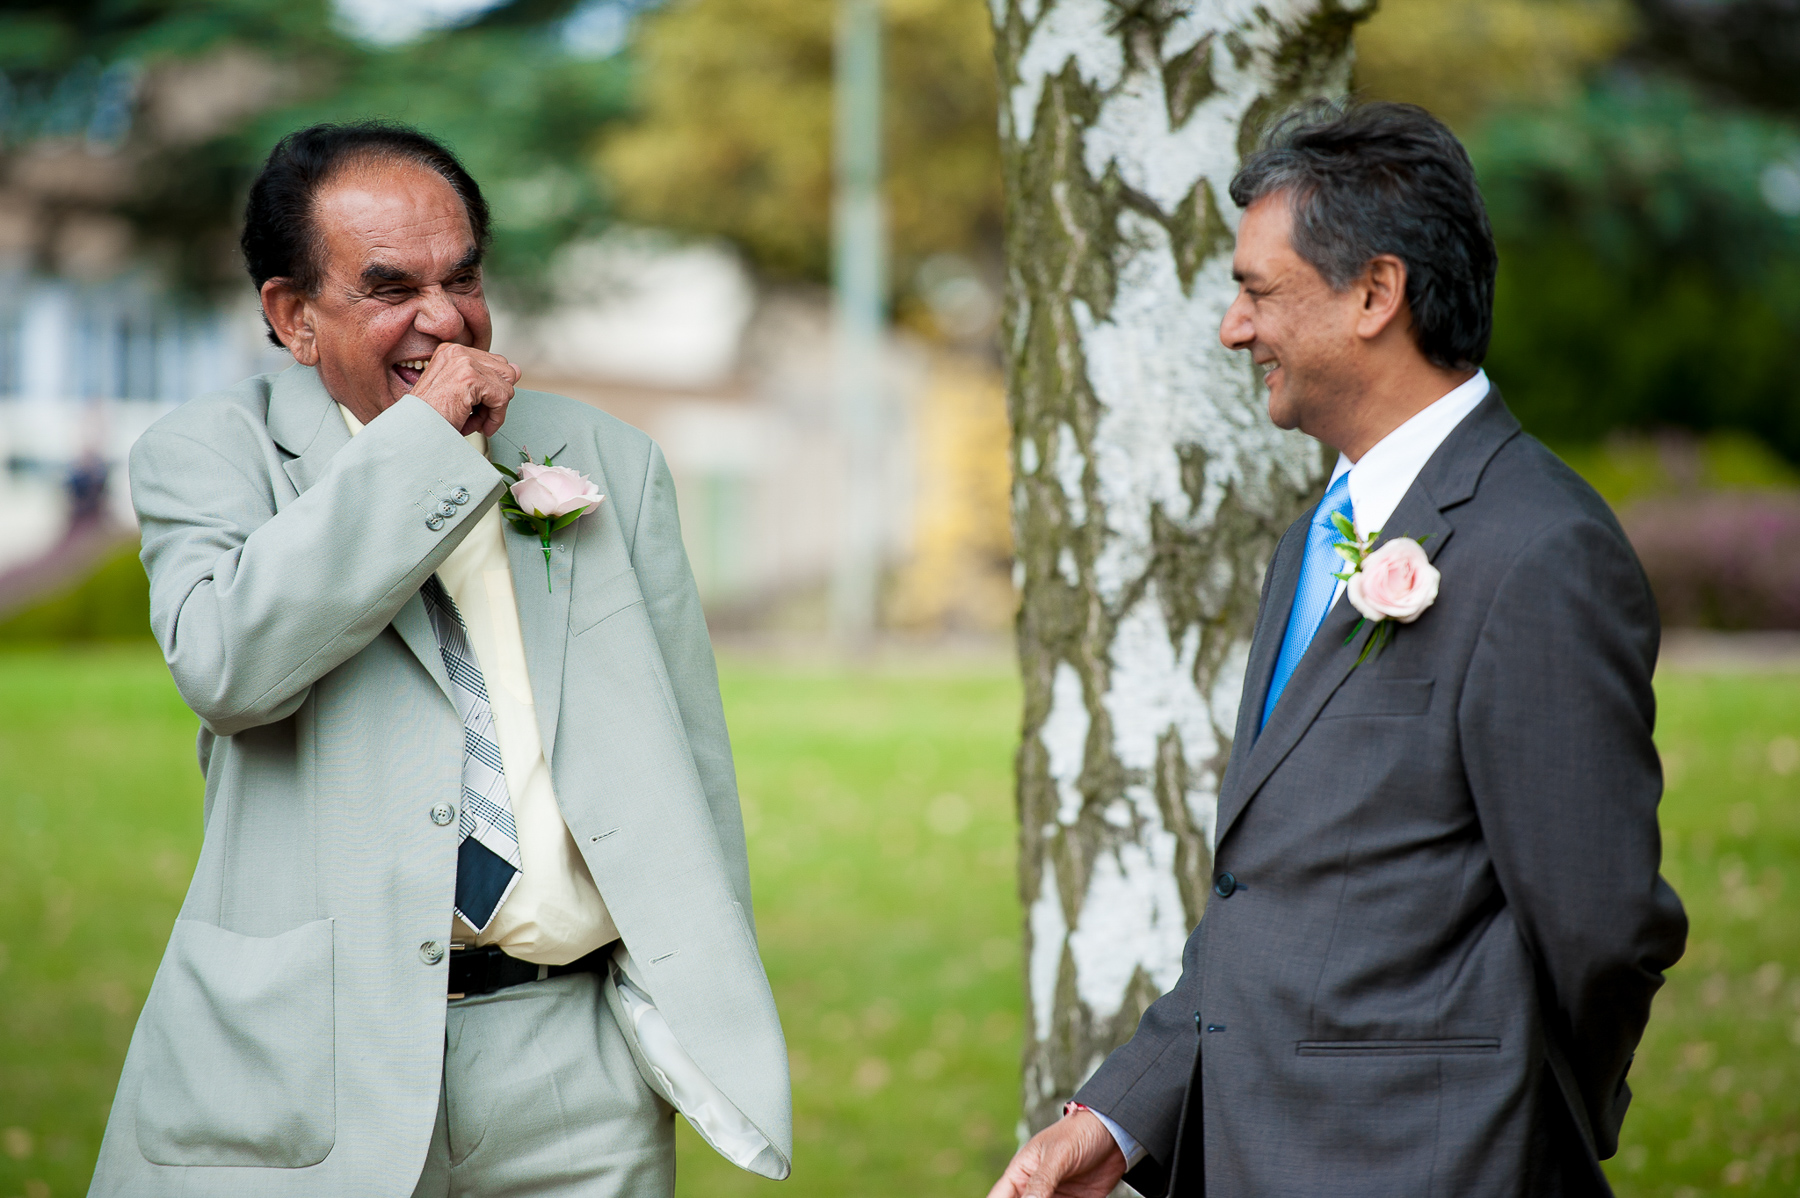 Indian Civil Wedding Photography Leicester By Jay Pankhania 004